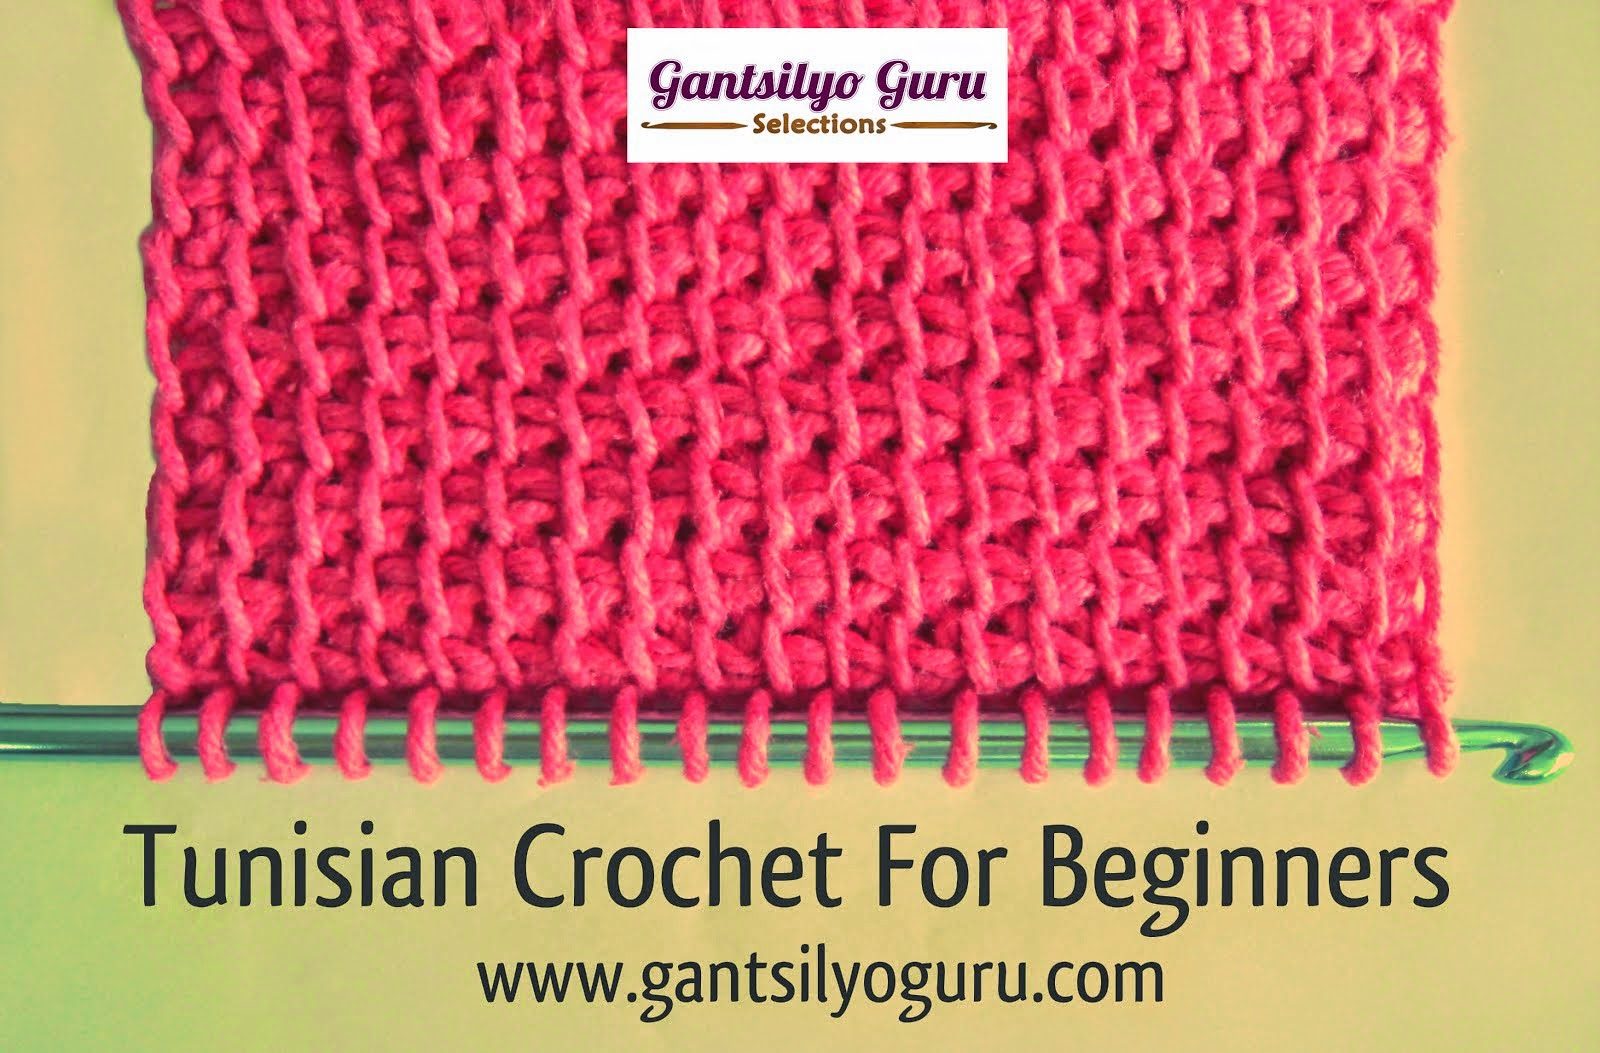 Want To Try Tunisian Crochet?